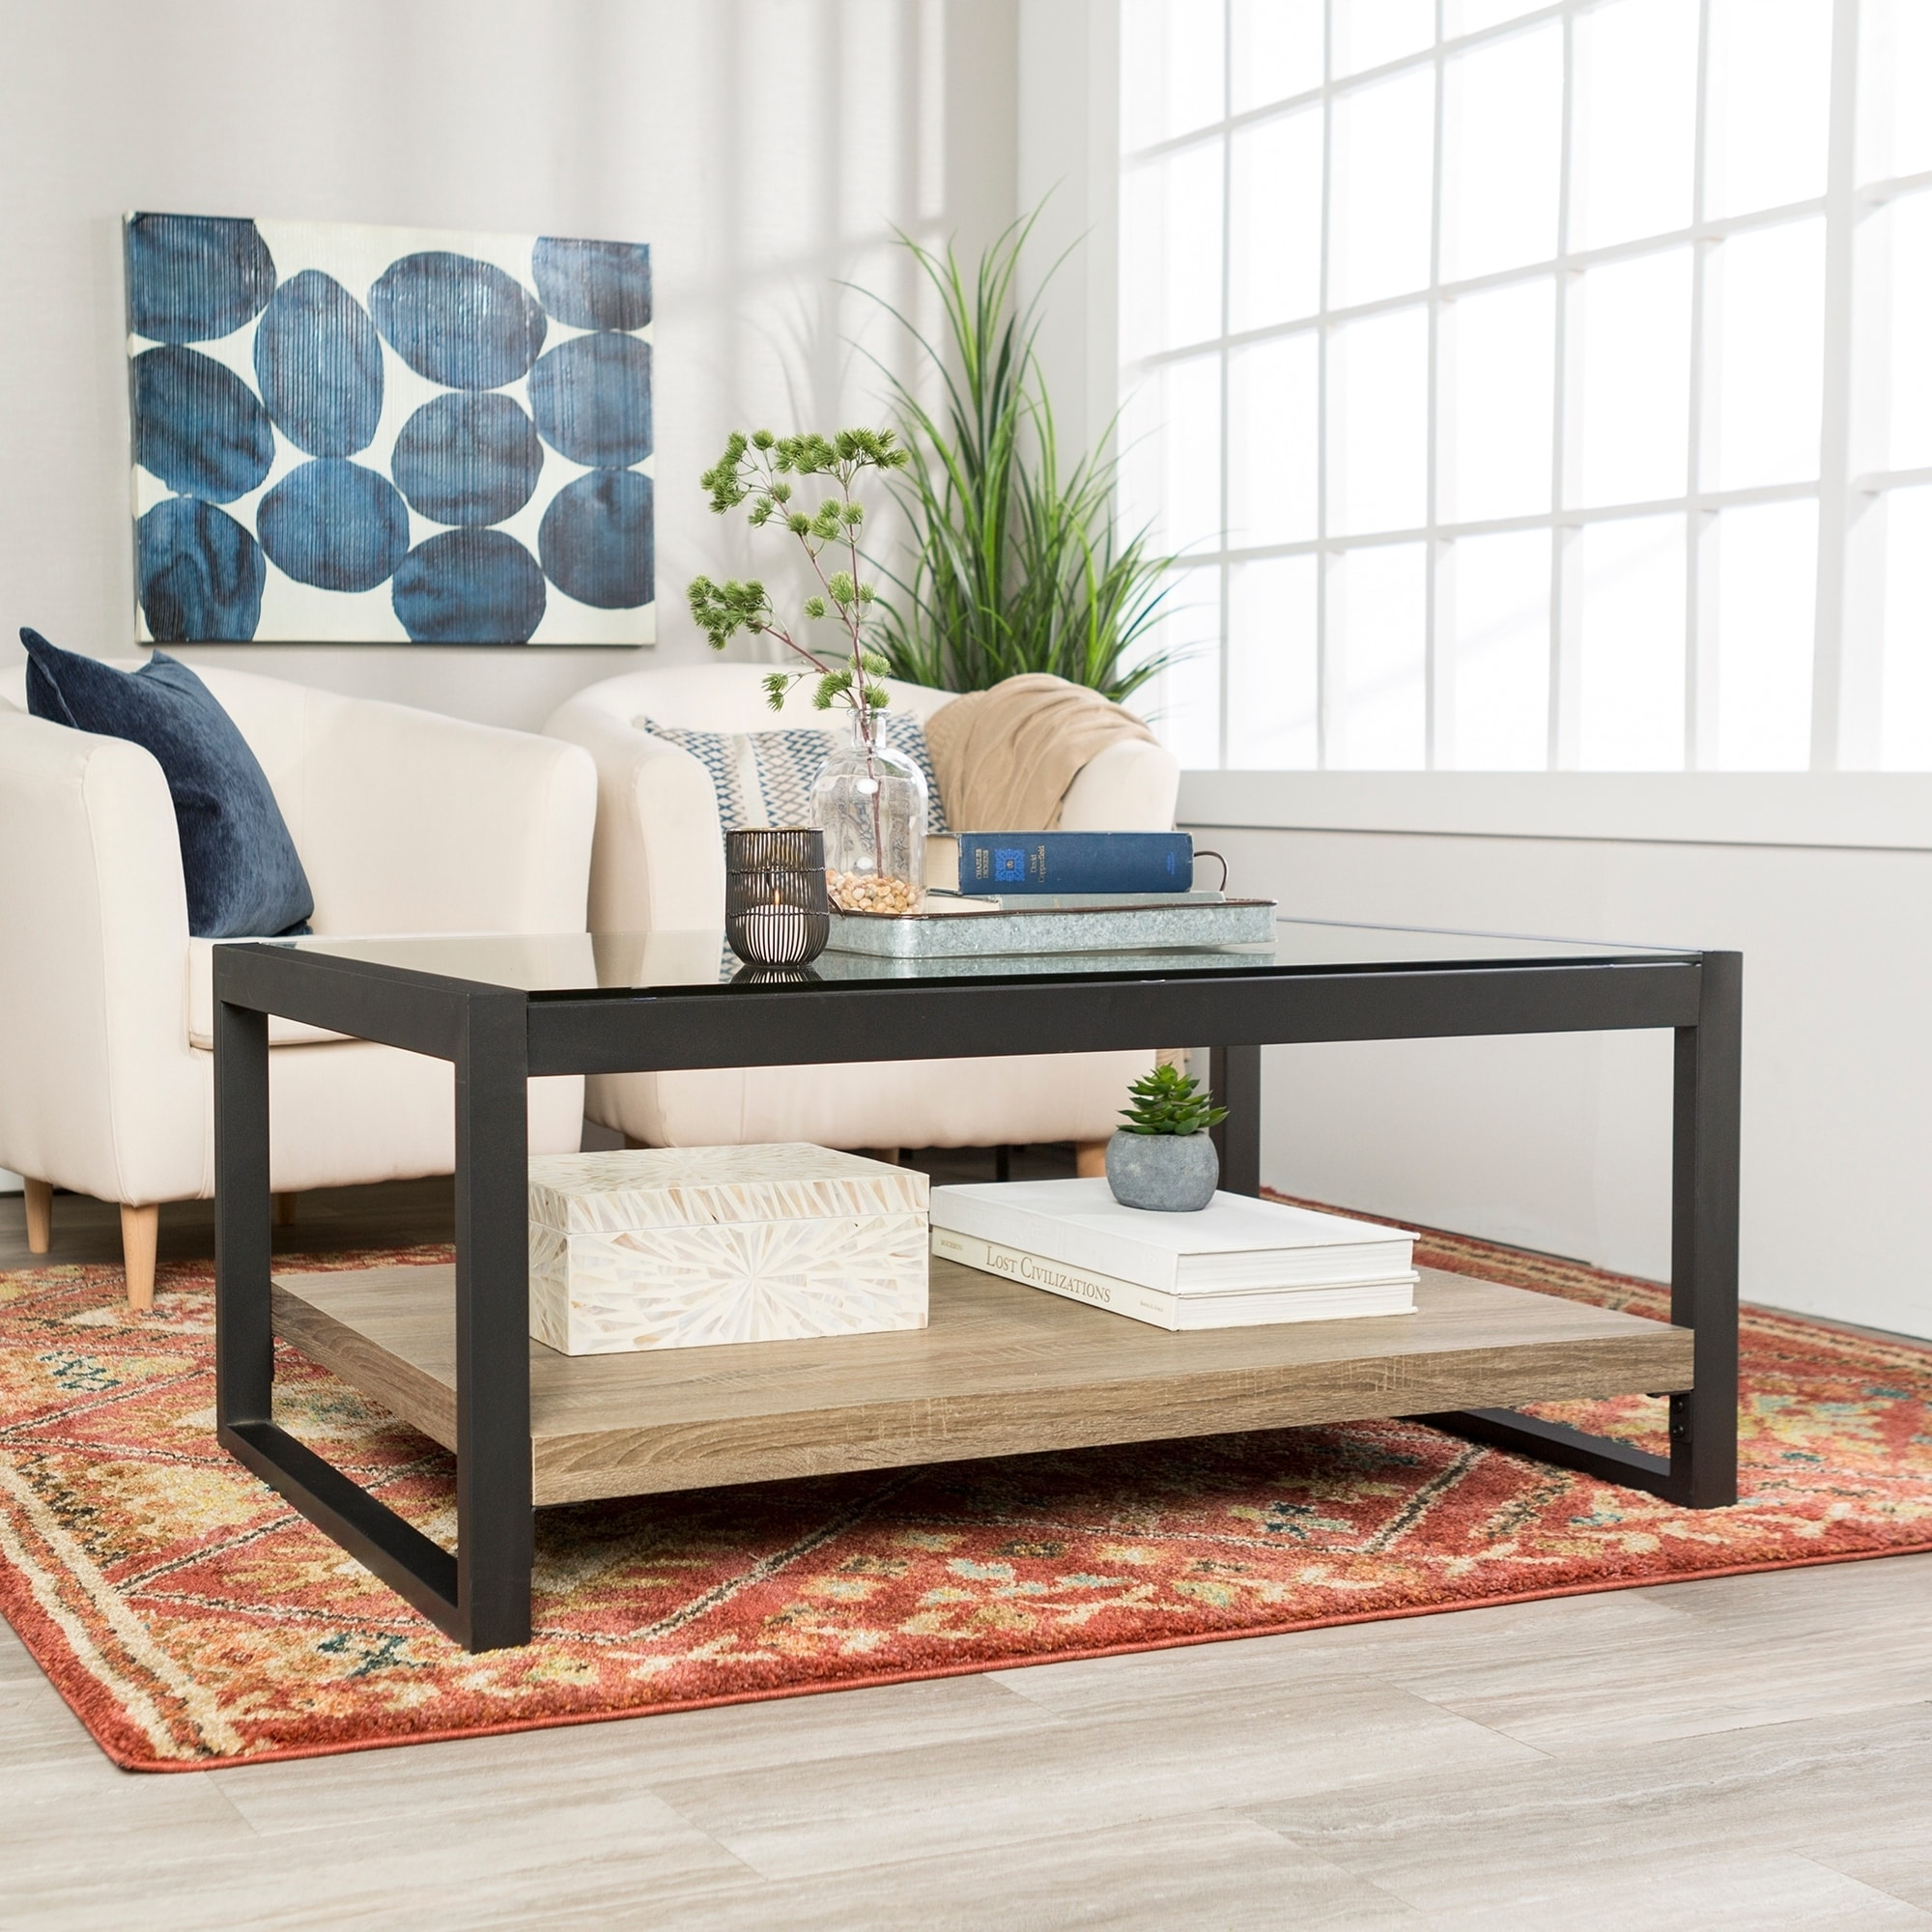 24 X 24 Coffee Table.48 Urban Blend Coffee Table With Glass Top 48 X 24 X 18h